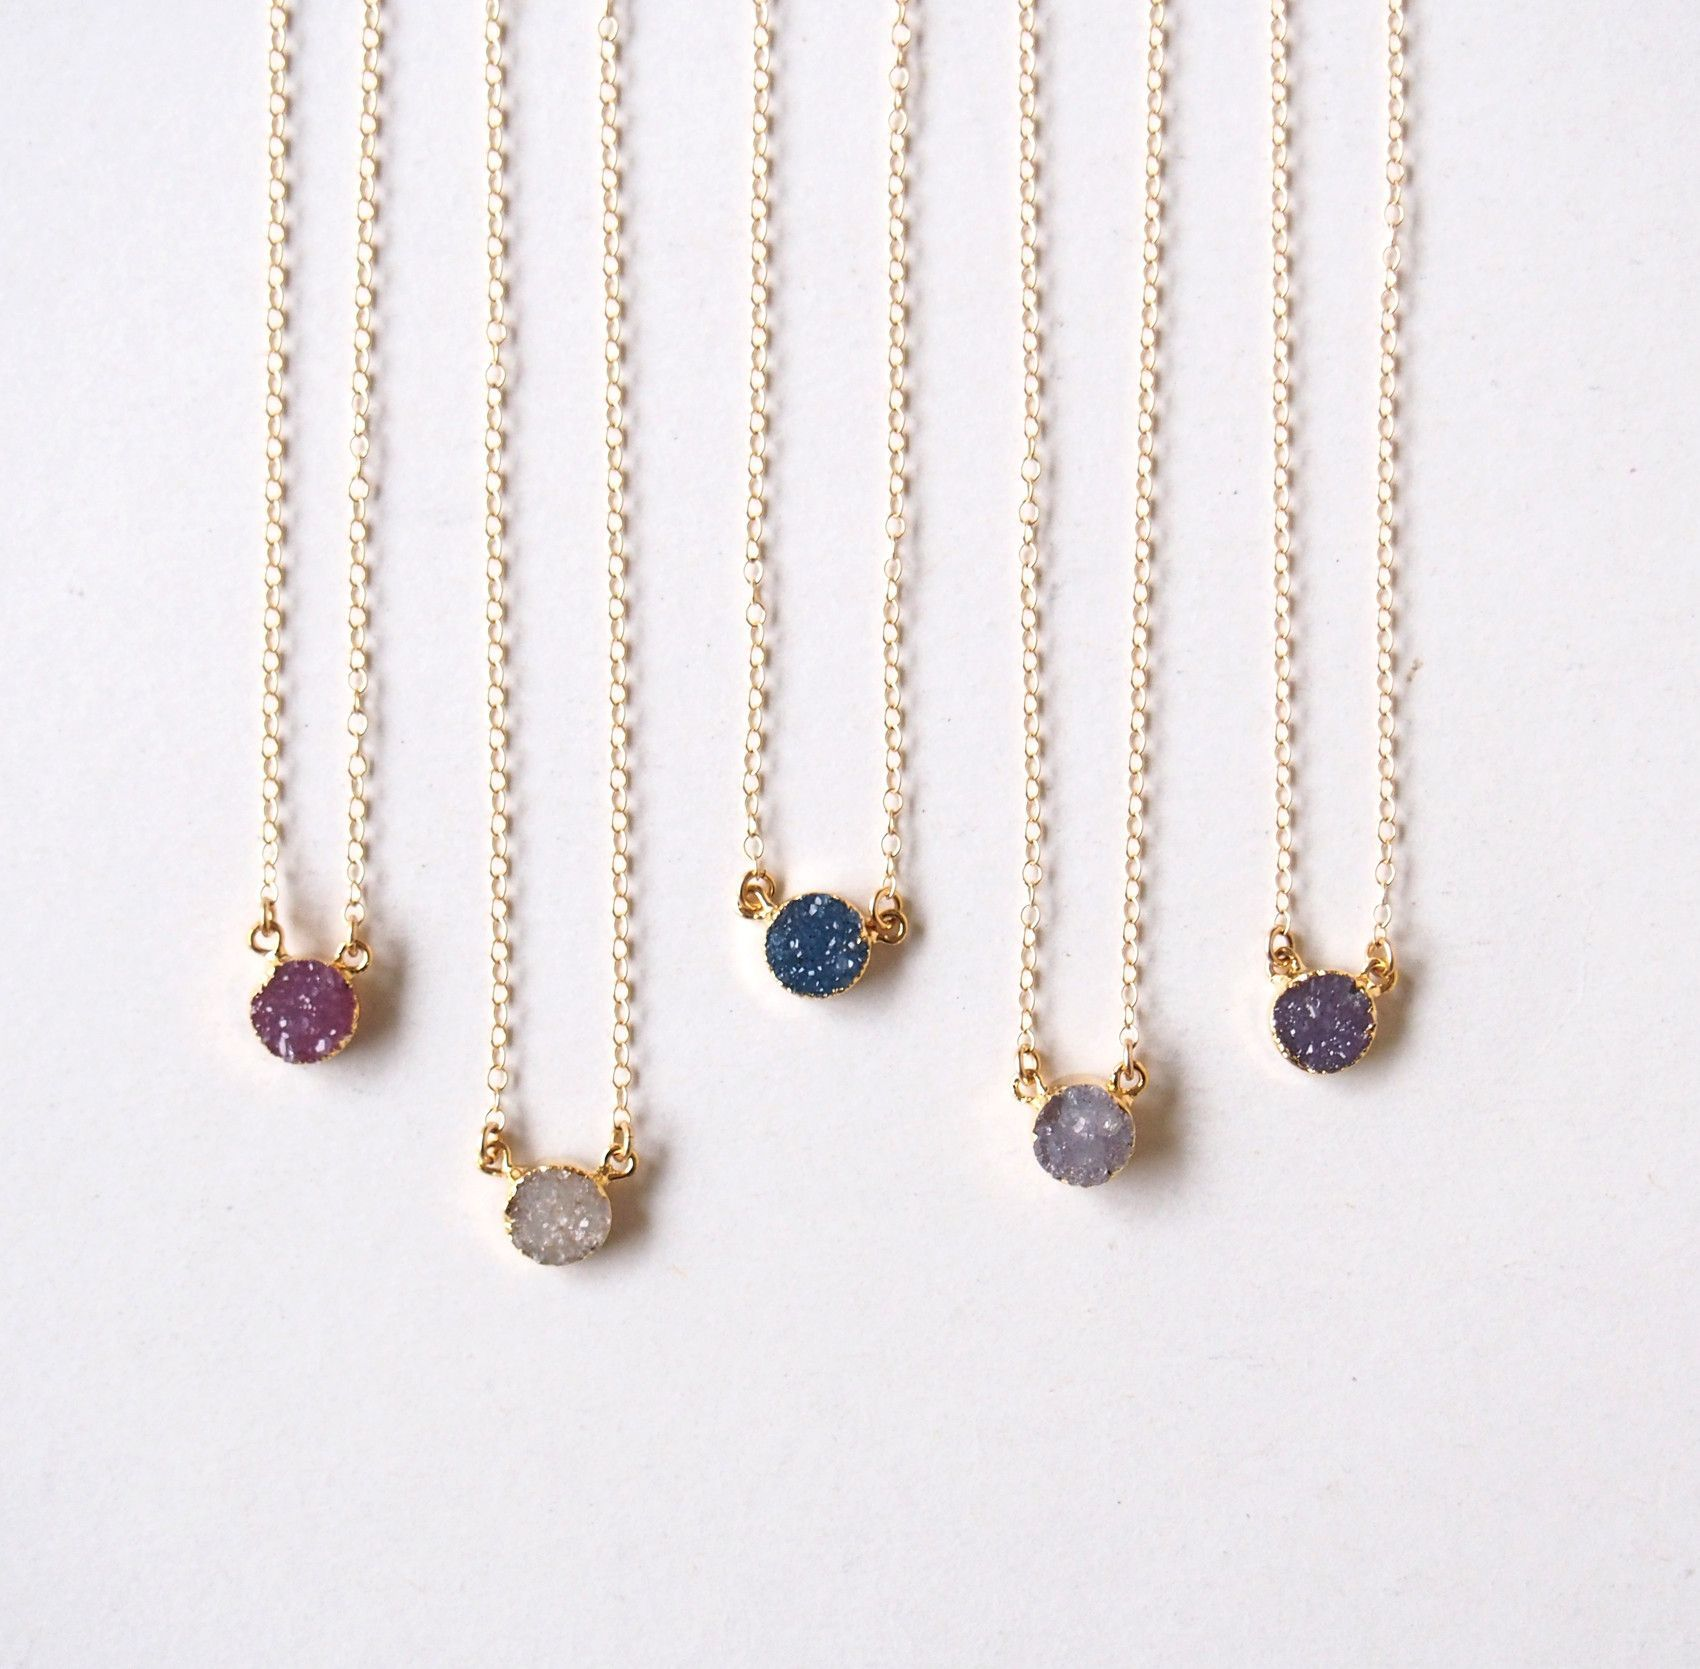 Gold Druzy Gemstone Choker Pendant Necklace | Products | Pinterest